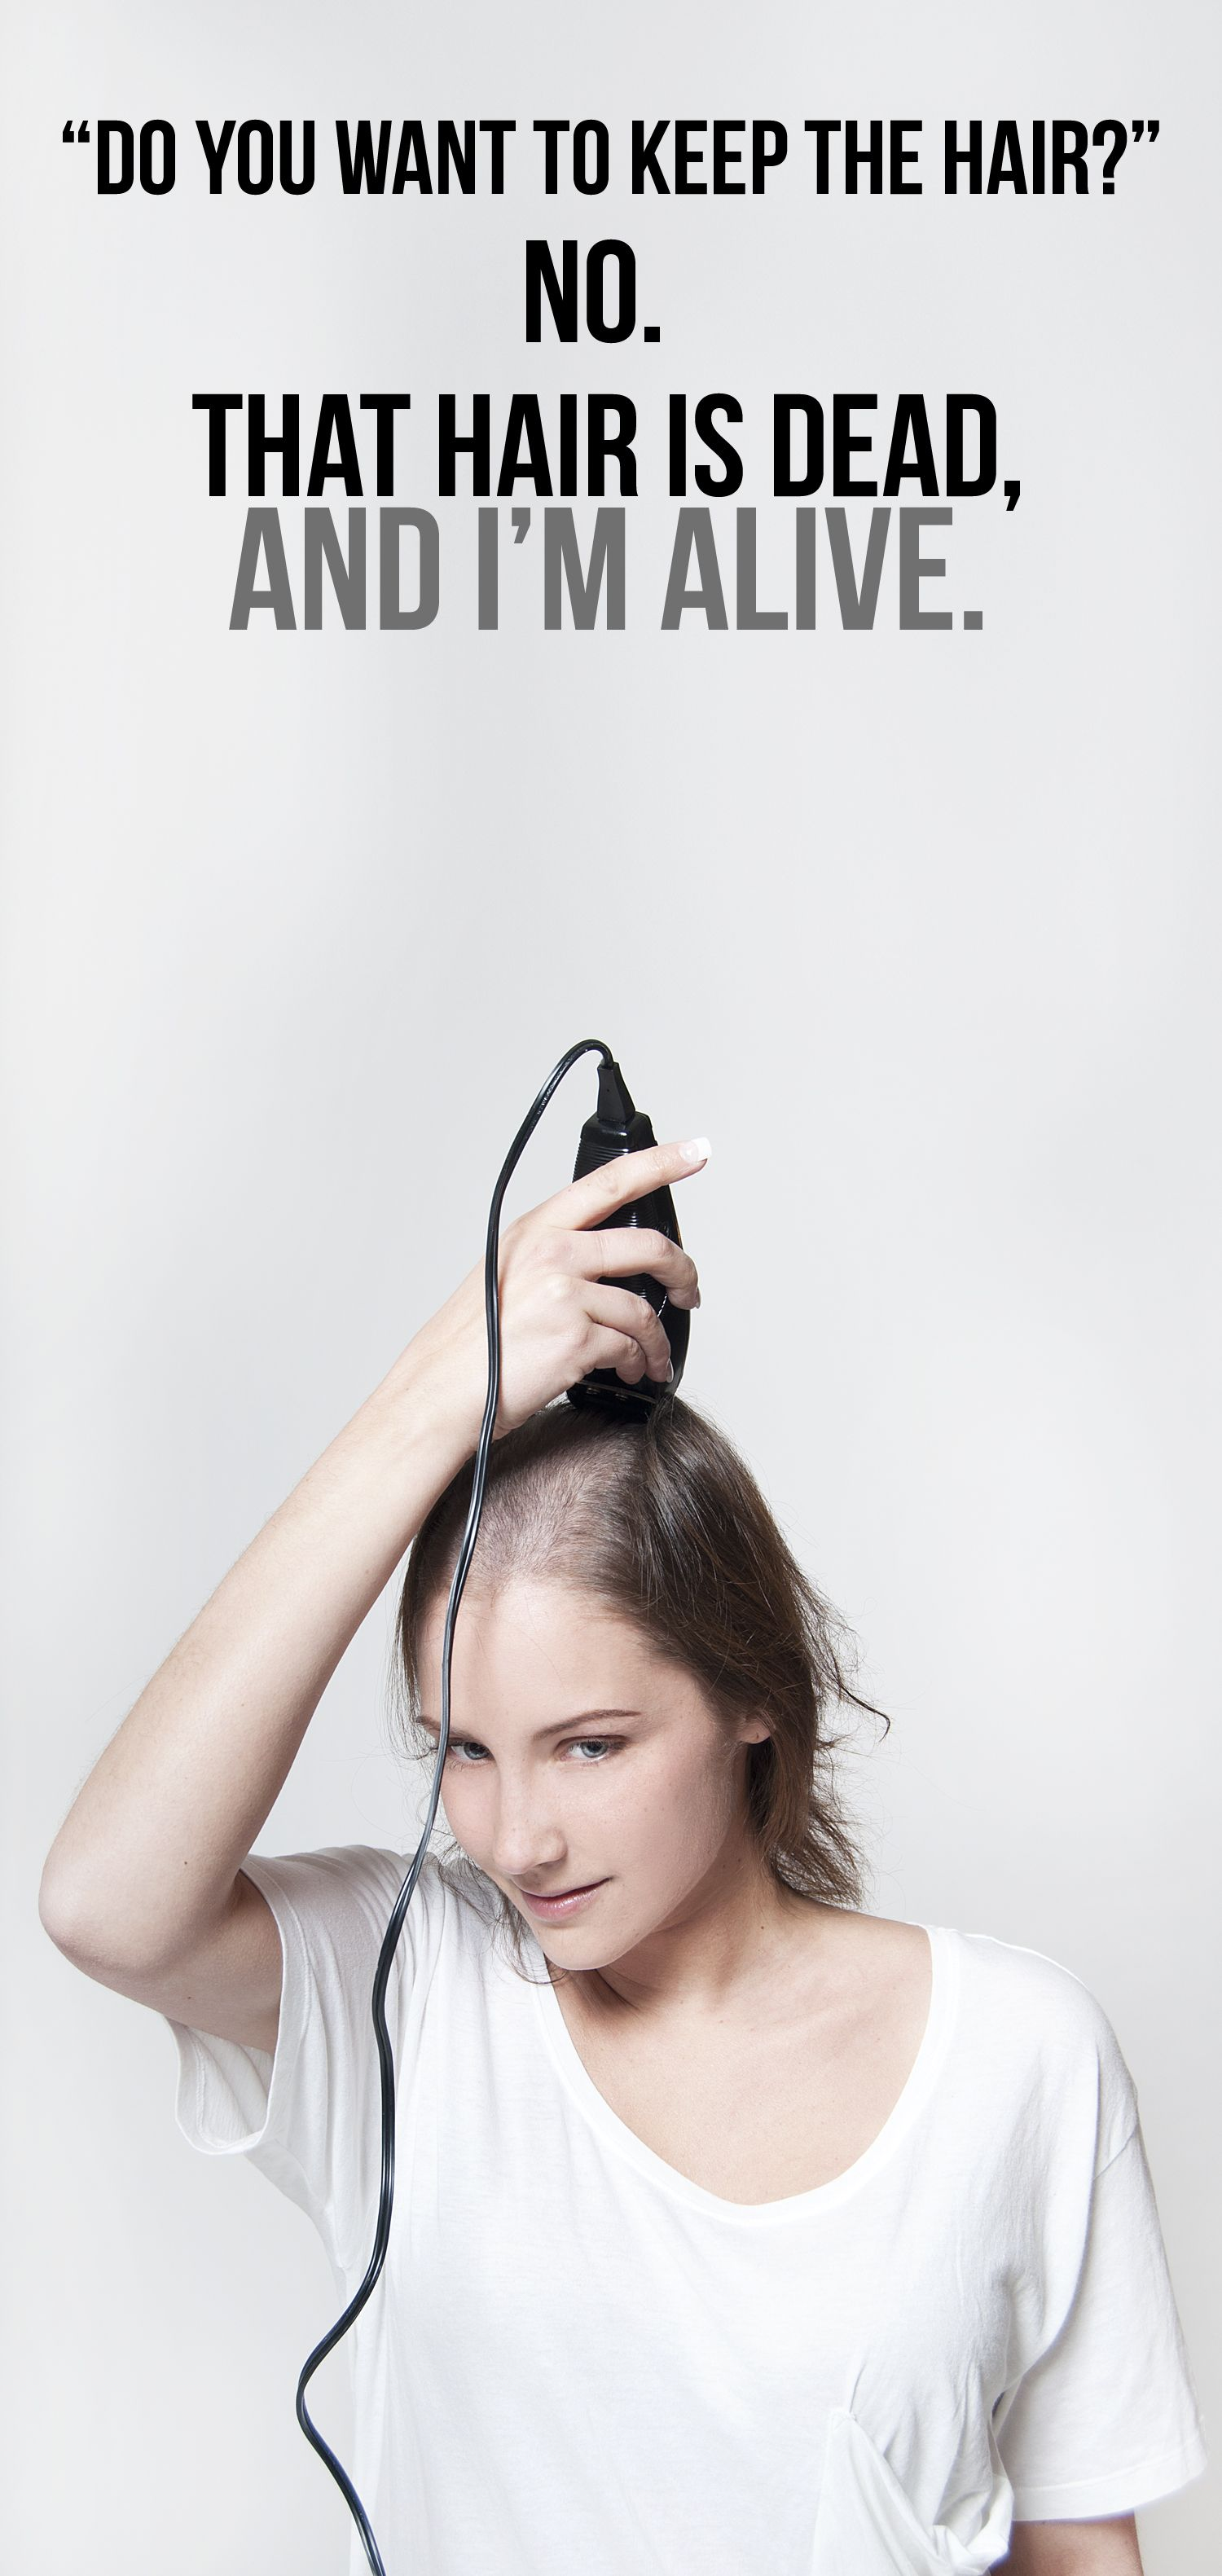 Sure it can be traumatic losing your hair  whether your a woman or